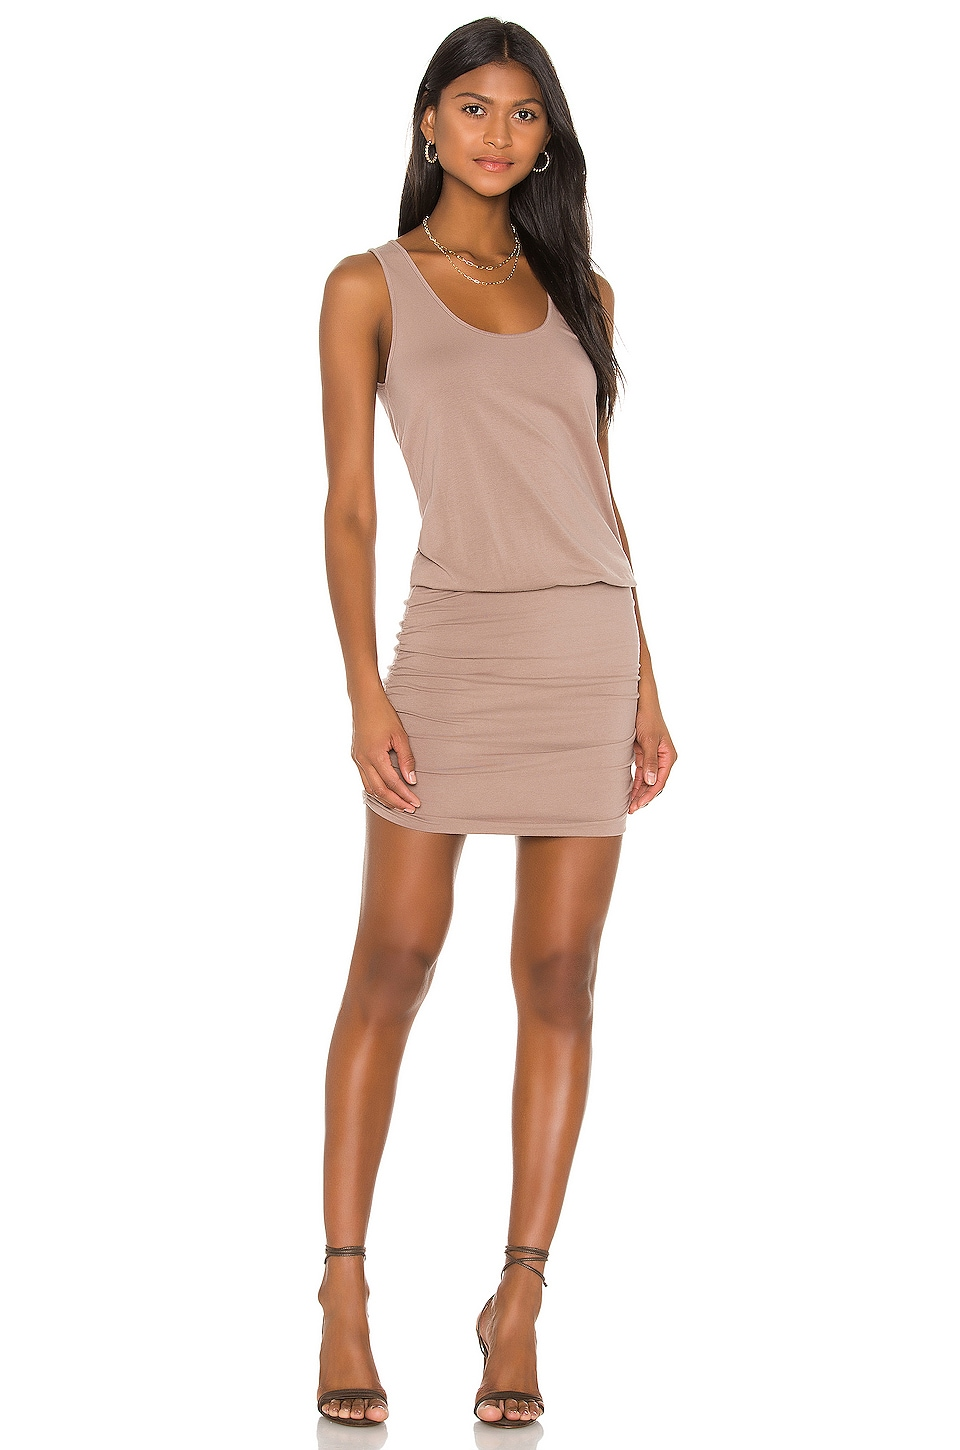 Draped Modal Jersey Mini Dress             Bobi                                                                                                       CA$ 90.97 3